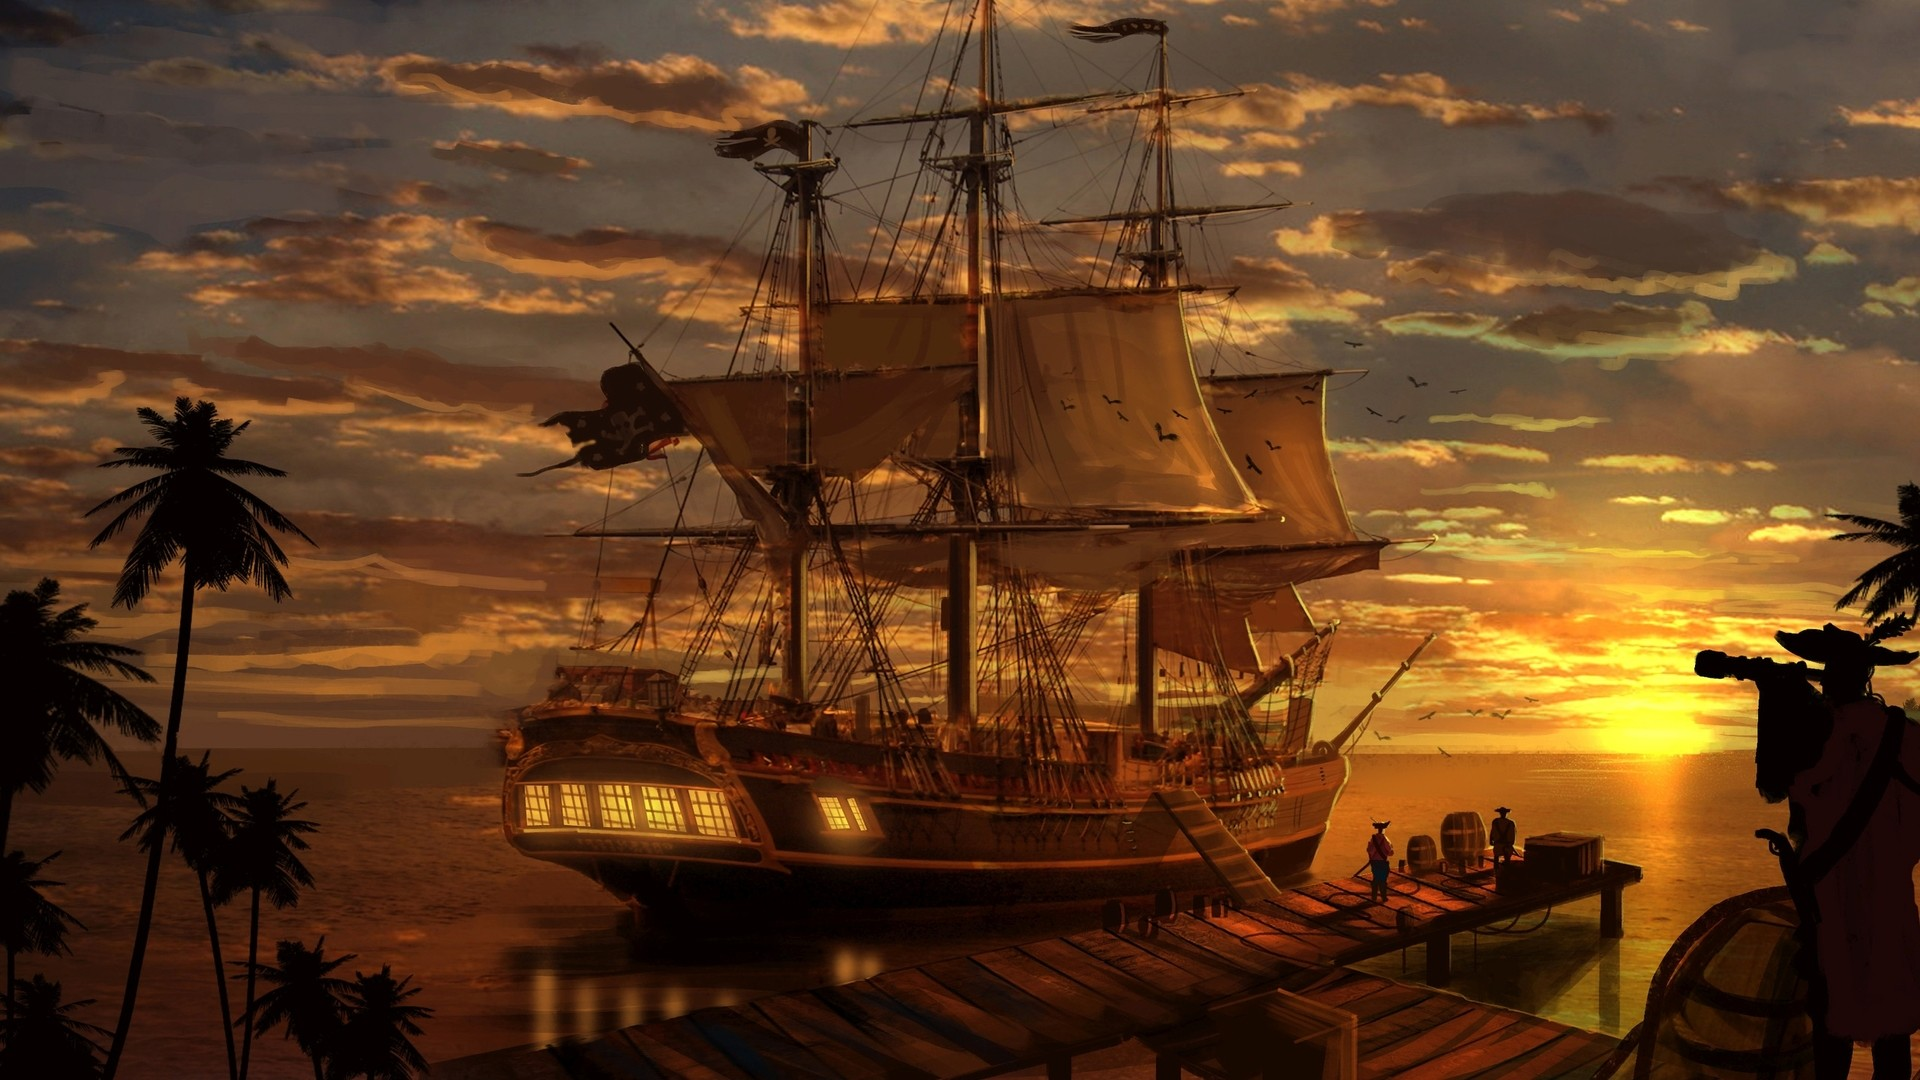 64 Old Ship Wallpapers on WallpaperPlay 1920x1080